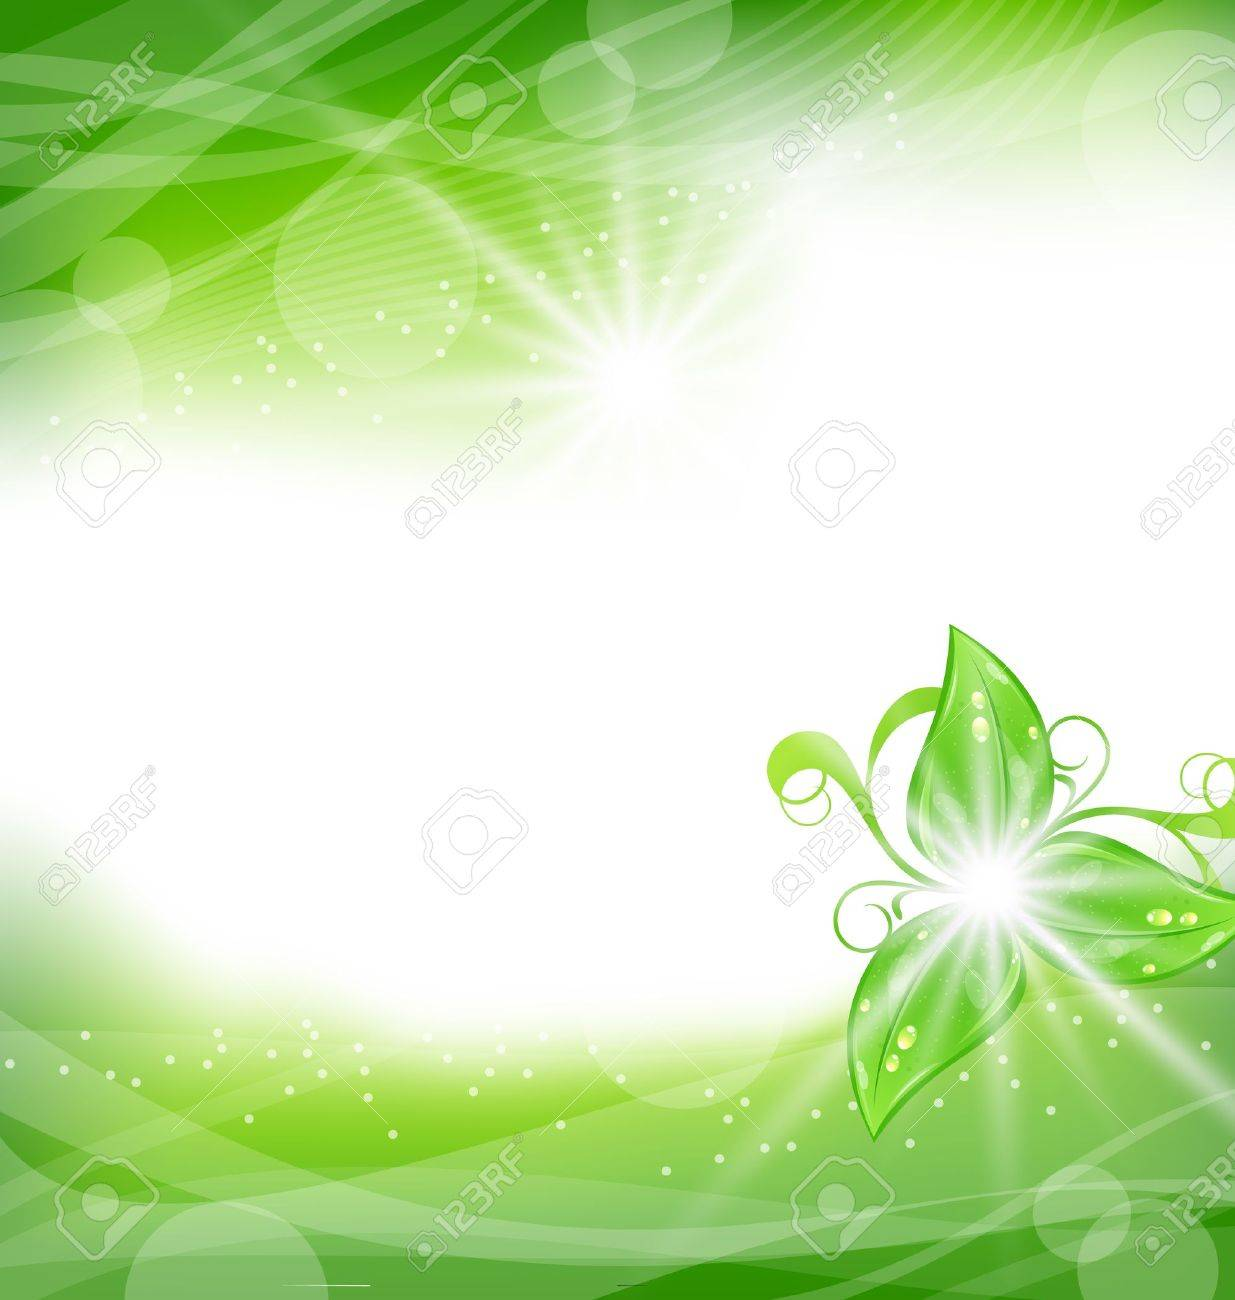 Illustration eco friendly background with green leaves - vector Stock Vector - 17968356